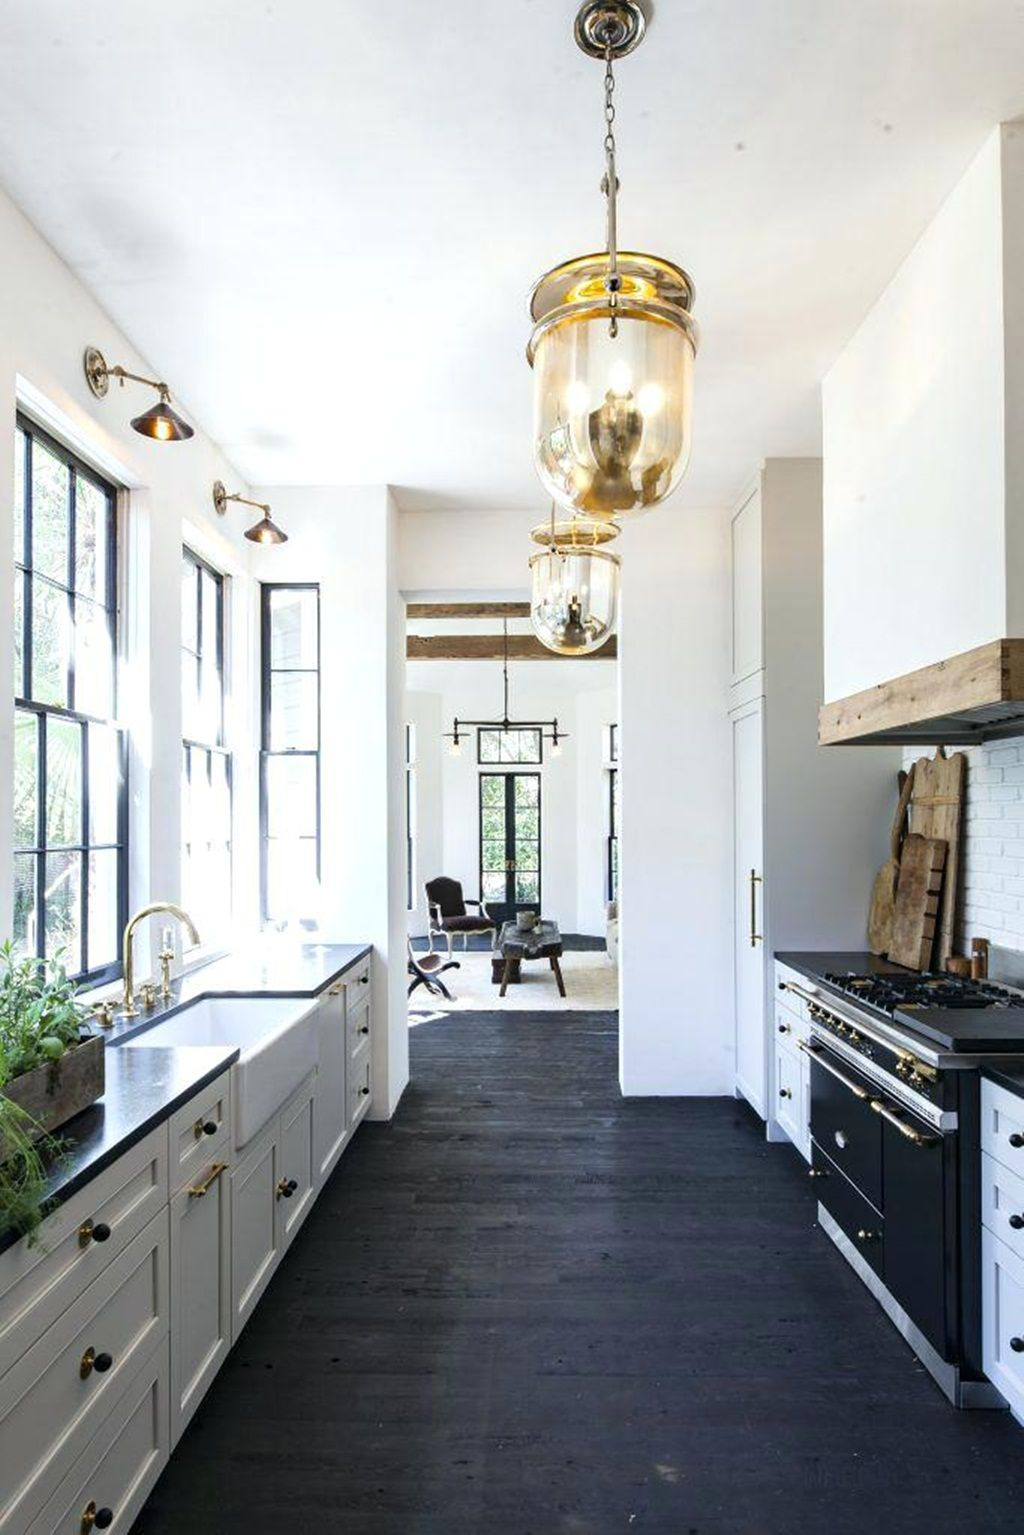 2019 Remodeling Ideas For Small Kitchens With Luxury And